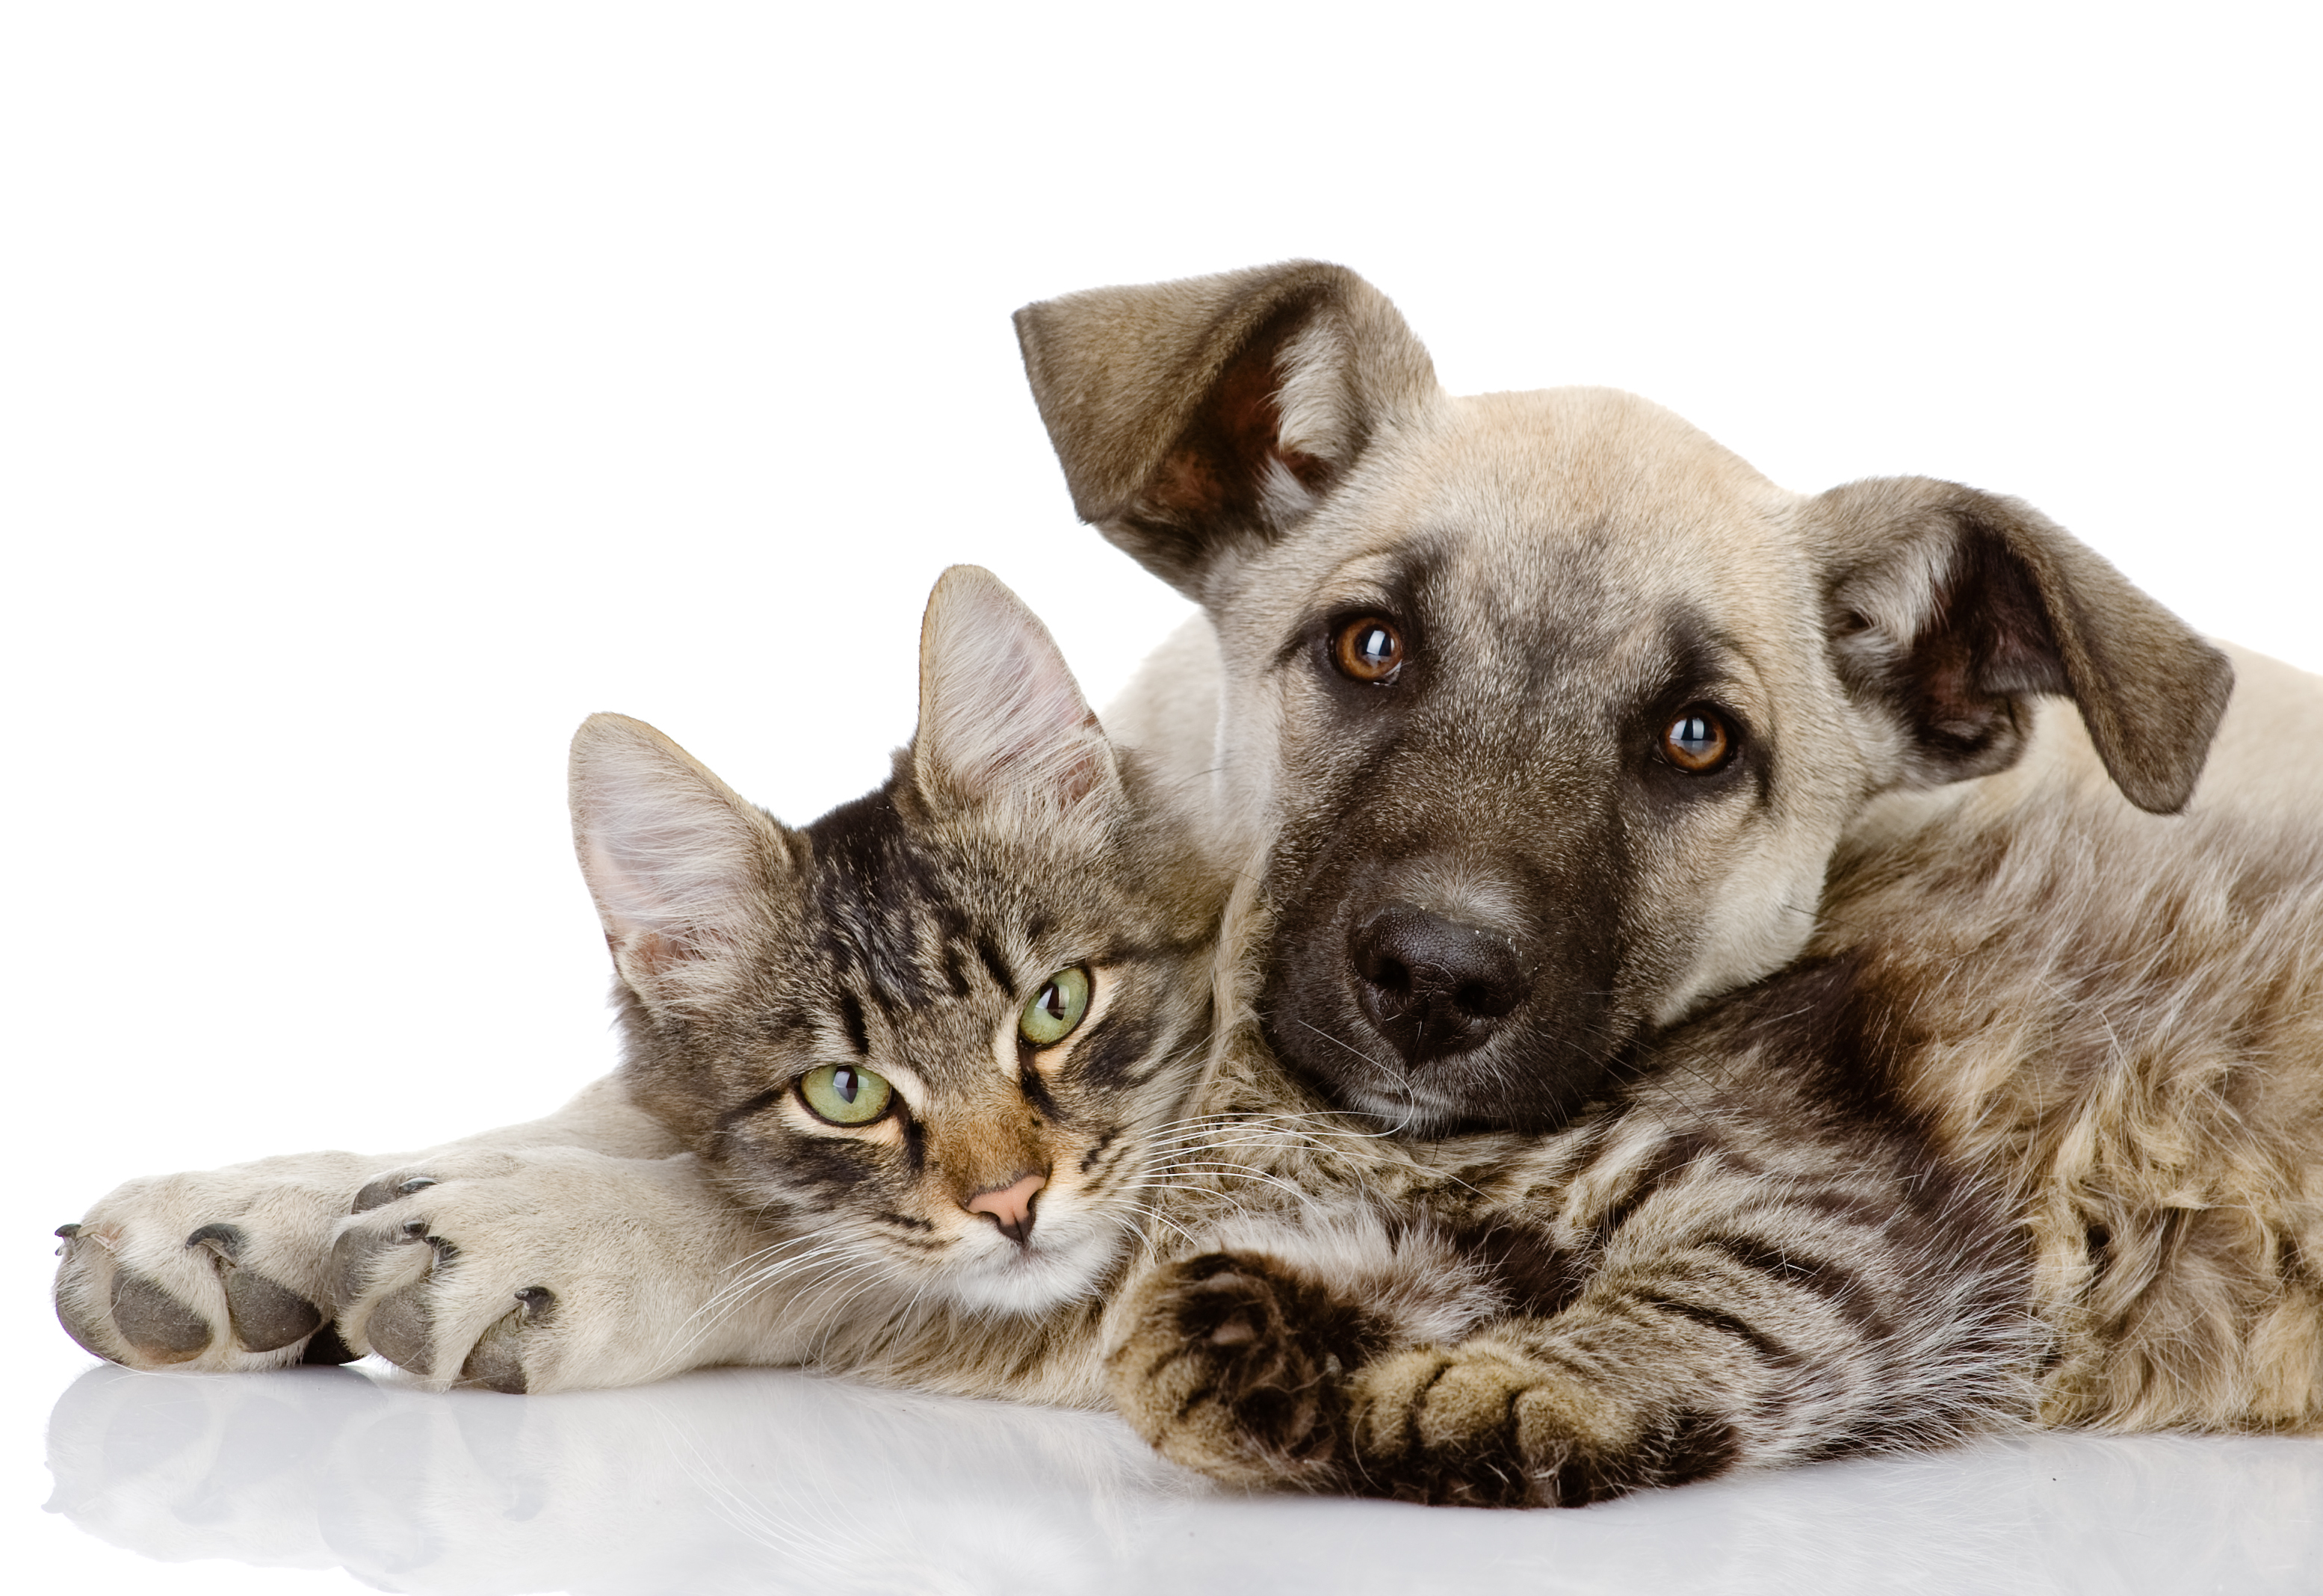 A cat and dog having a cuddle